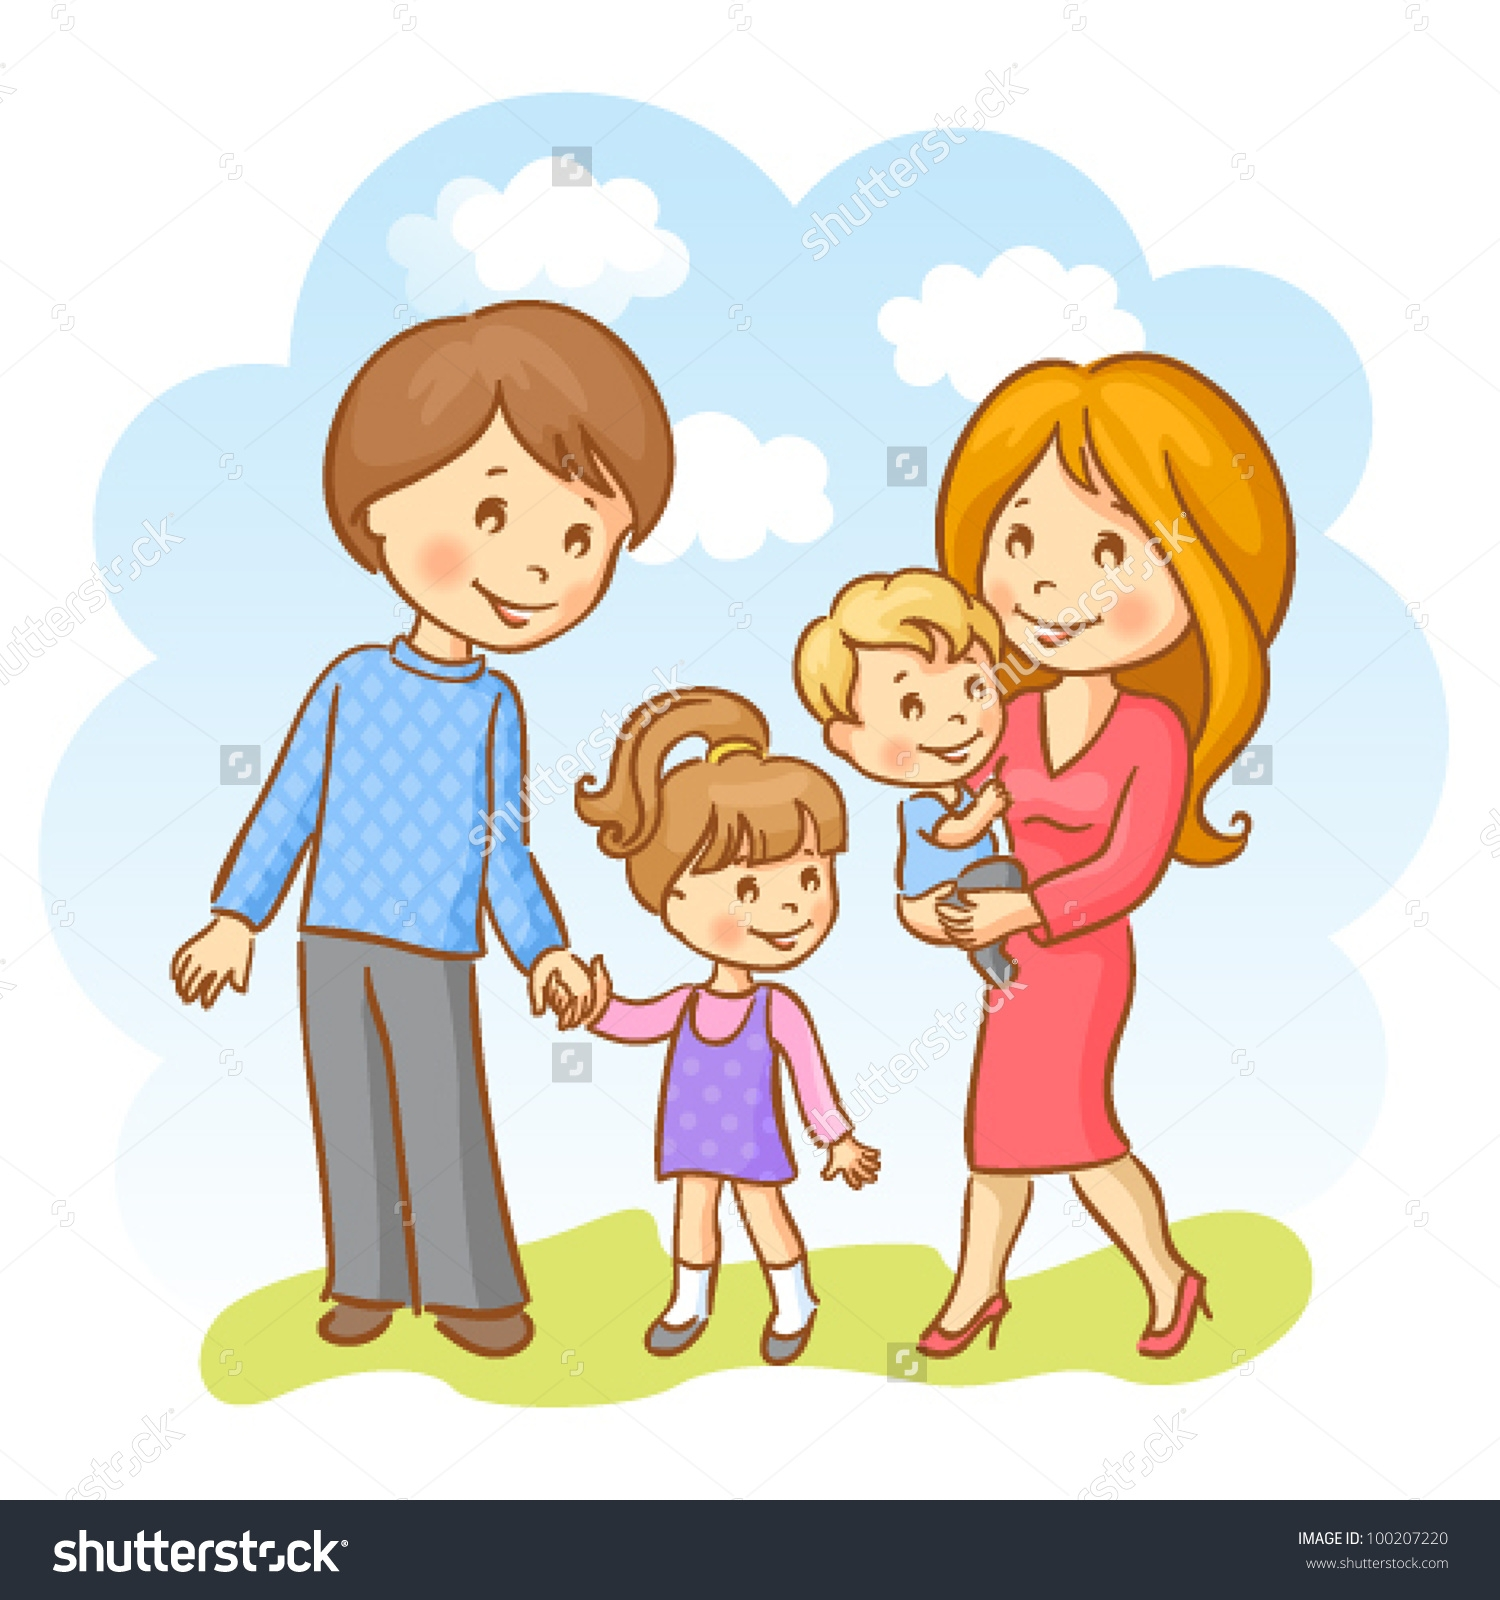 Family clipart 5 people 1 daughter 2 sons clip library stock Family Clipart 5 People 2 Daughters 1 Son - clipartsgram.com clip library stock